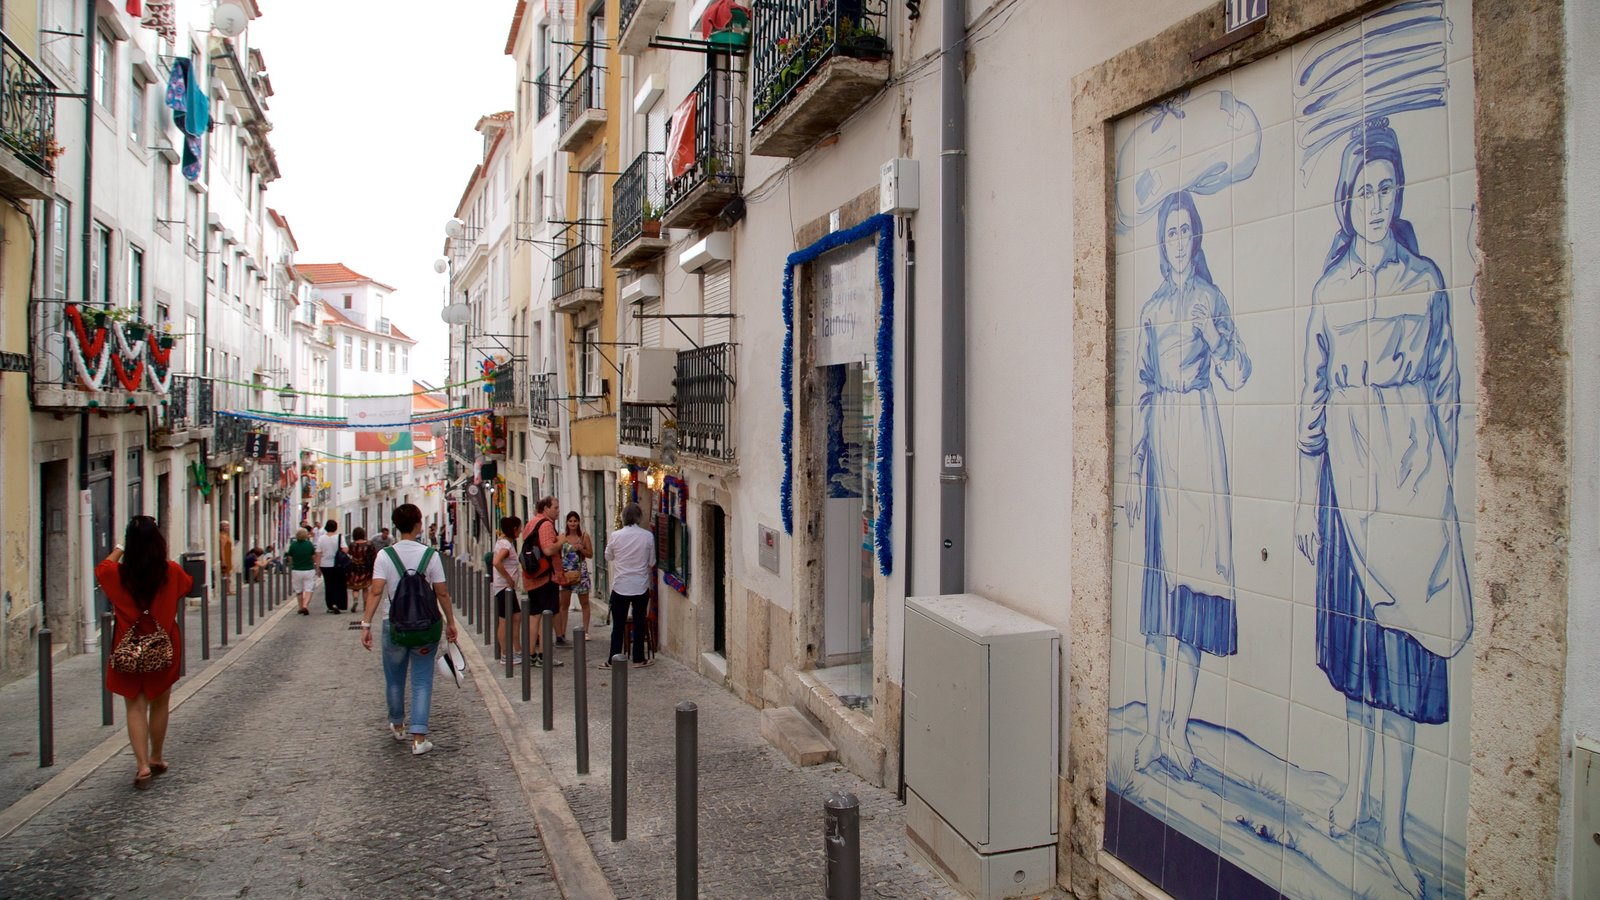 Alfama showing outdoor art and street scenes as well as a small group of people